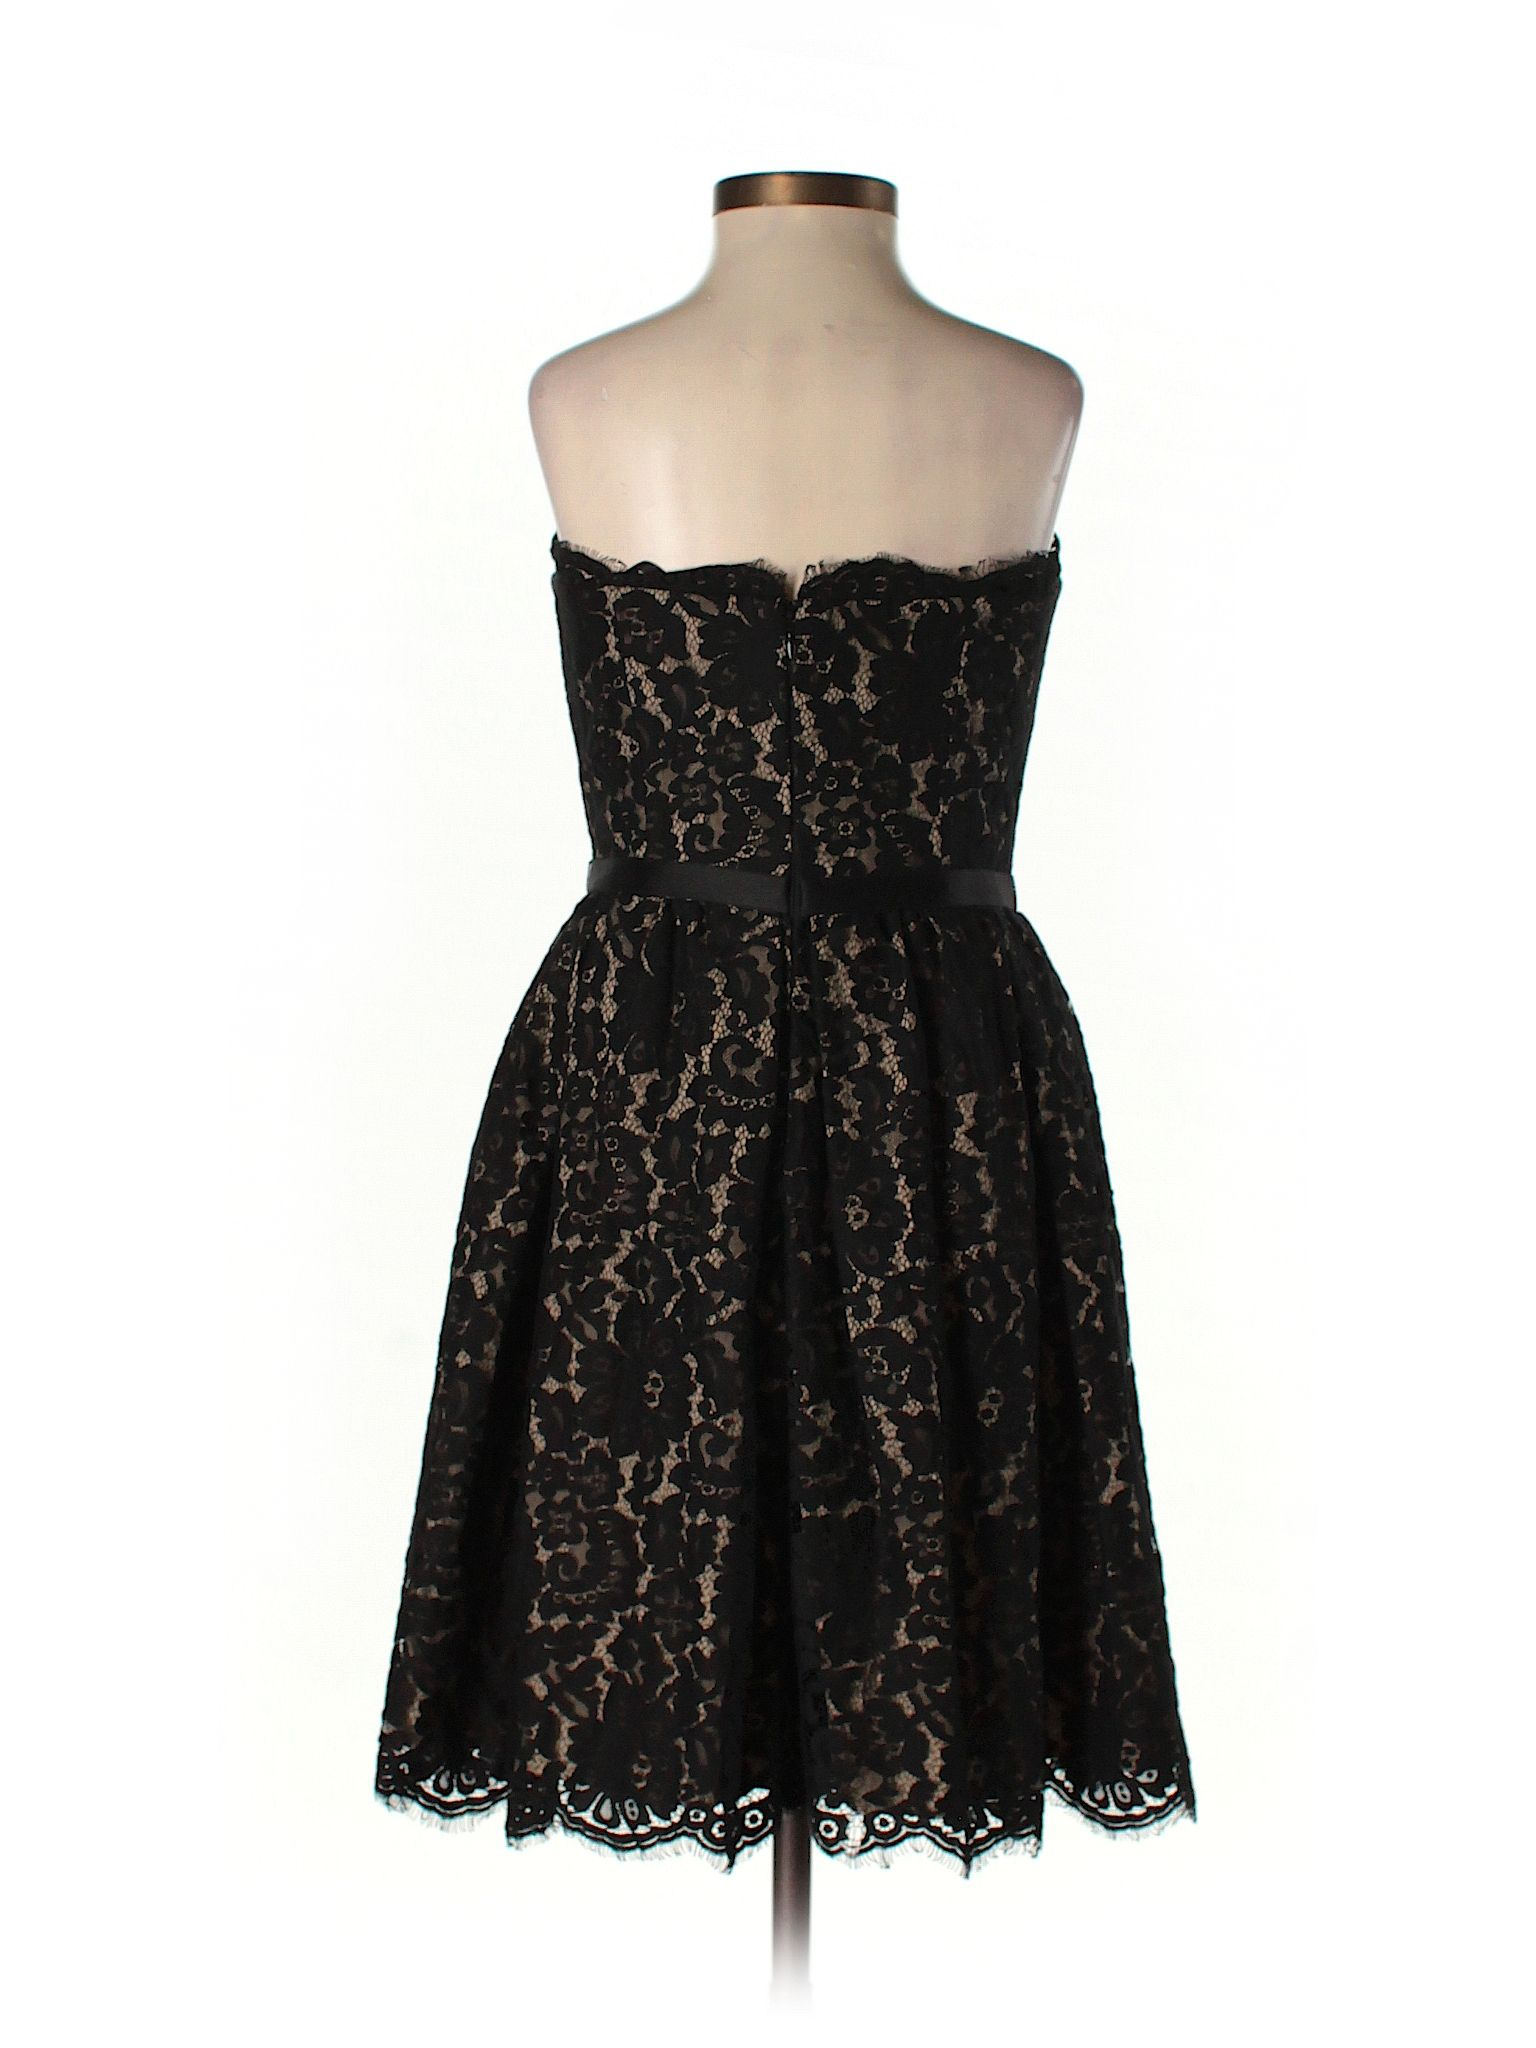 Robert Rodriguez For Target Neiman Marcus Lace Black Cocktail Dress Size 4 93 Off In 2021 Black Cocktail Dress Dresses Black Lace Cocktail Dress [ 2048 x 1536 Pixel ]